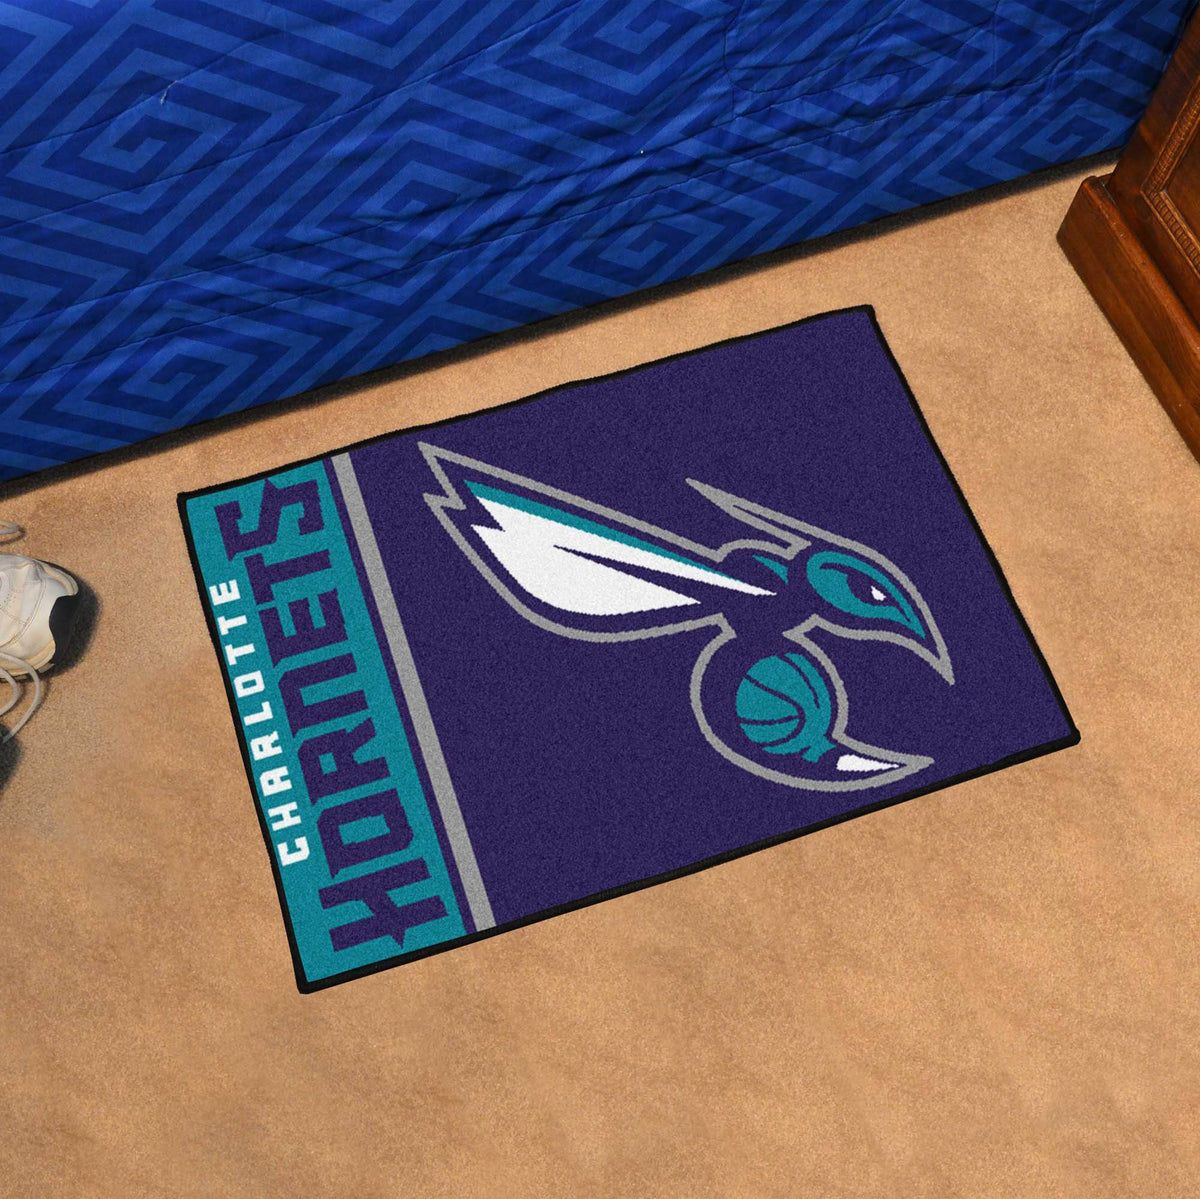 NBA - Uniform Starter Mat NBA Mats, Rectangular Mats, Uniform Starter Mat, NBA, Home Fan Mats Charlotte Hornets